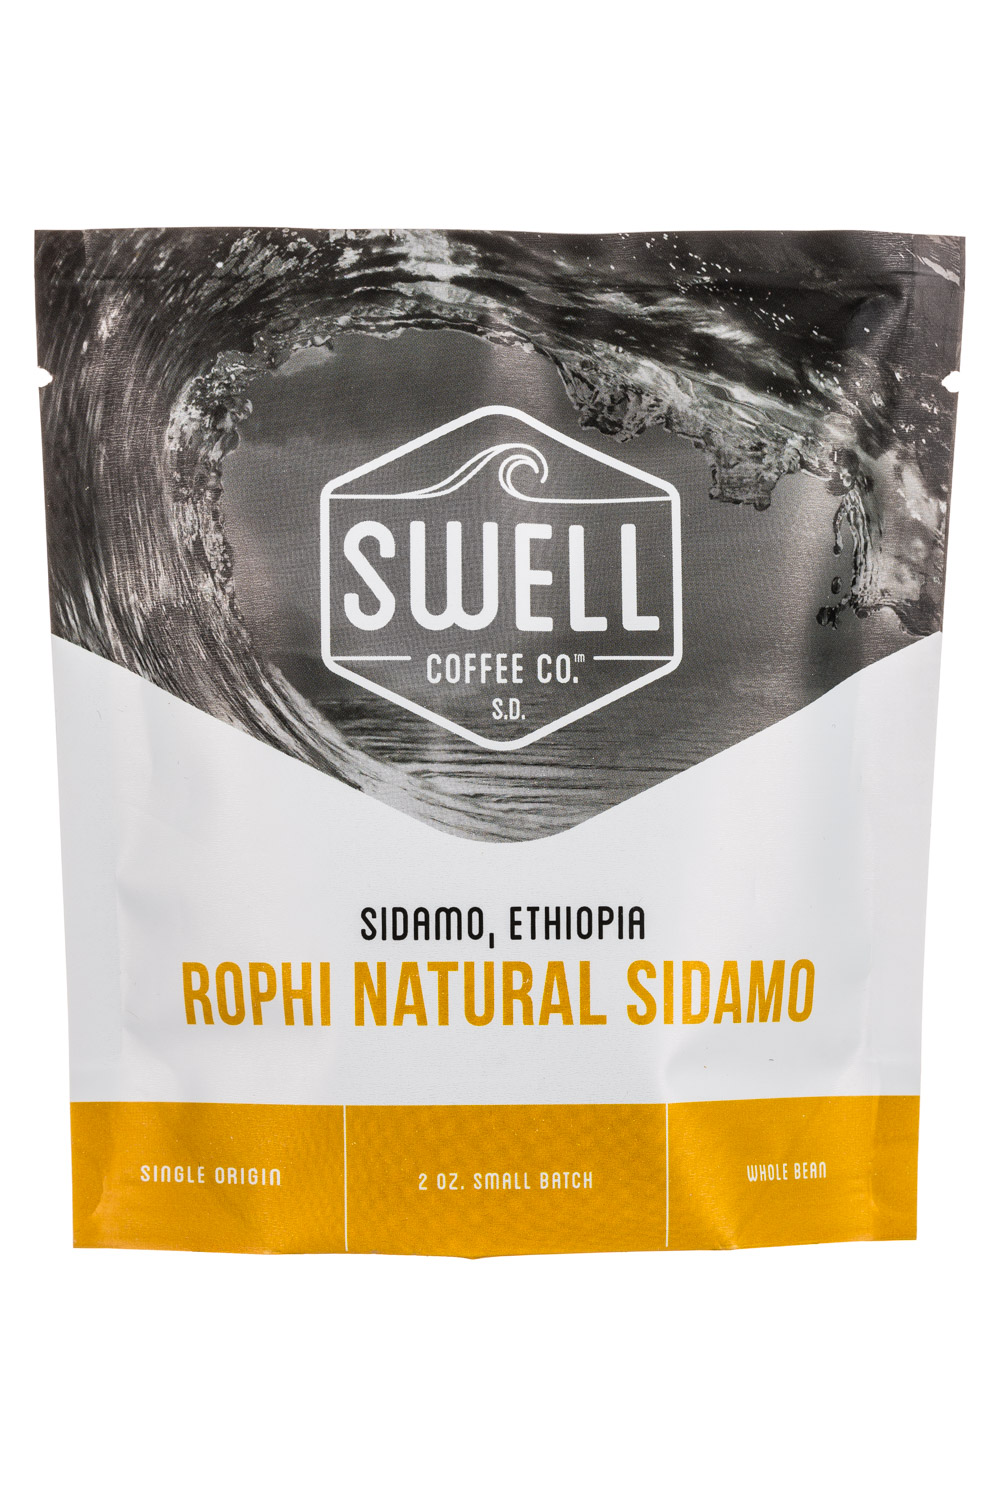 Rophi Natural Sidamo